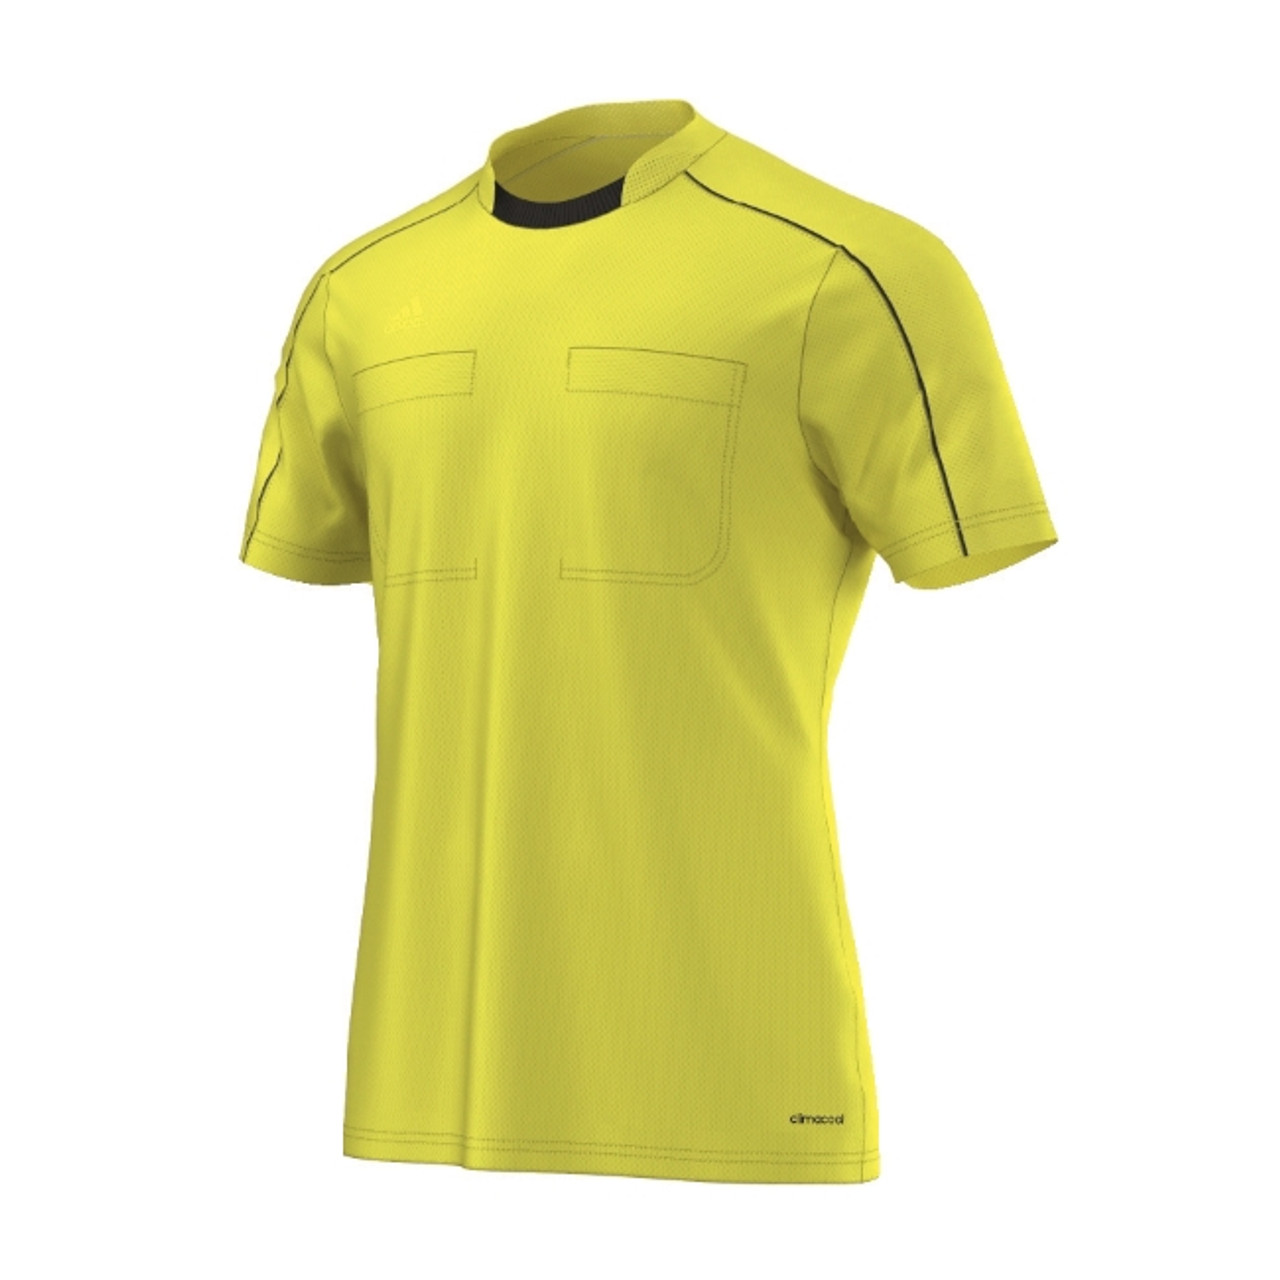 release date c973c a4e87 2016 Adidas Referee Jersey Short Sleeve (Shock Yellow)